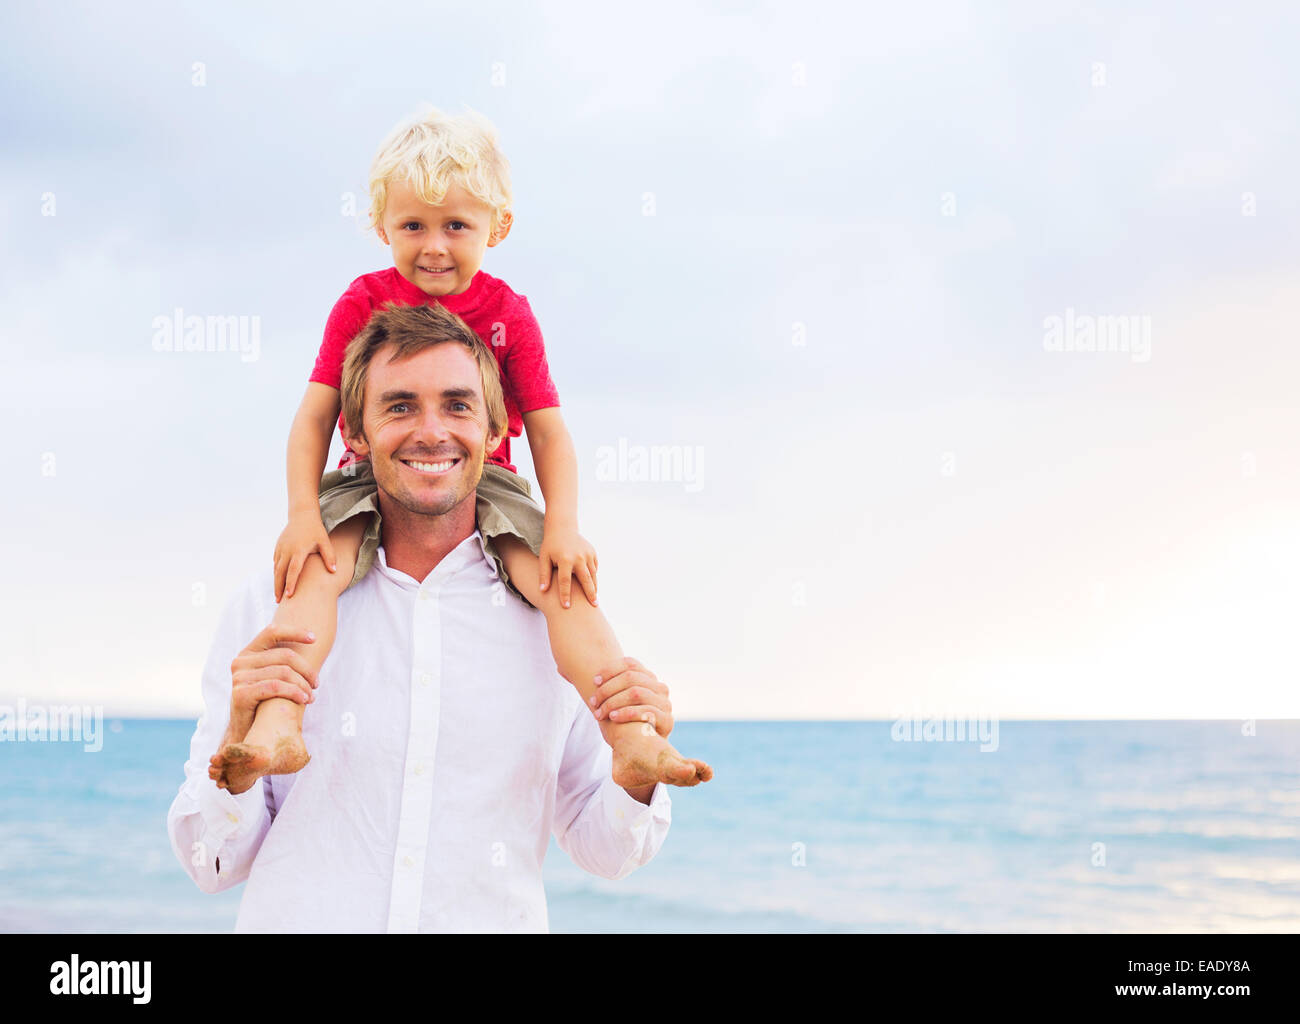 Father and Son Playing Having Fun on the Beach - Stock Image